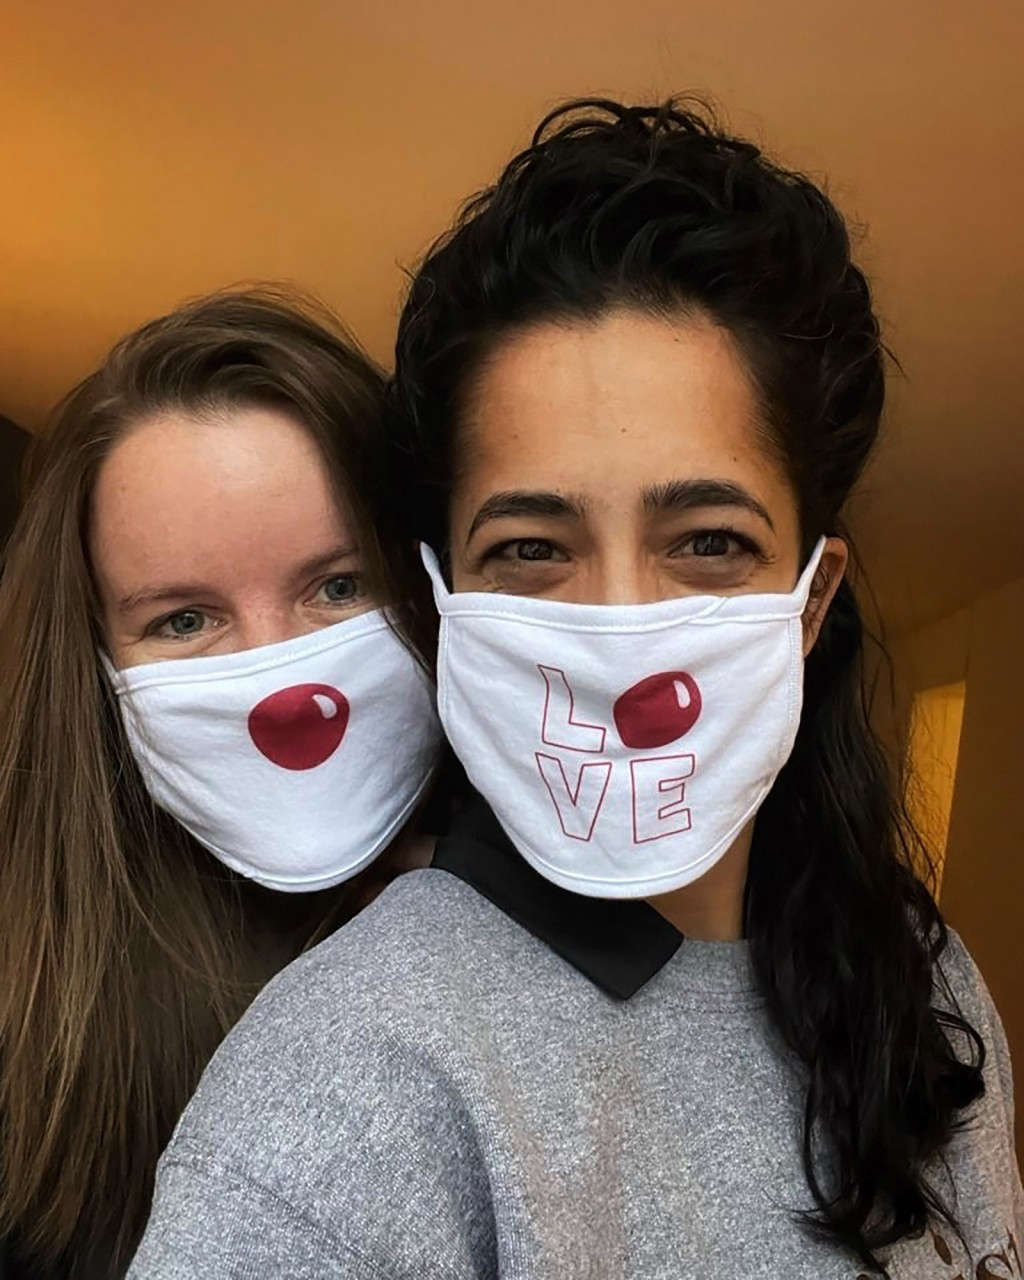 This undated photo provided by Comic Relief's Red Nose Day shows the special Red Nose Day masks that Walgreens employees will wear for the 2021 fundra...